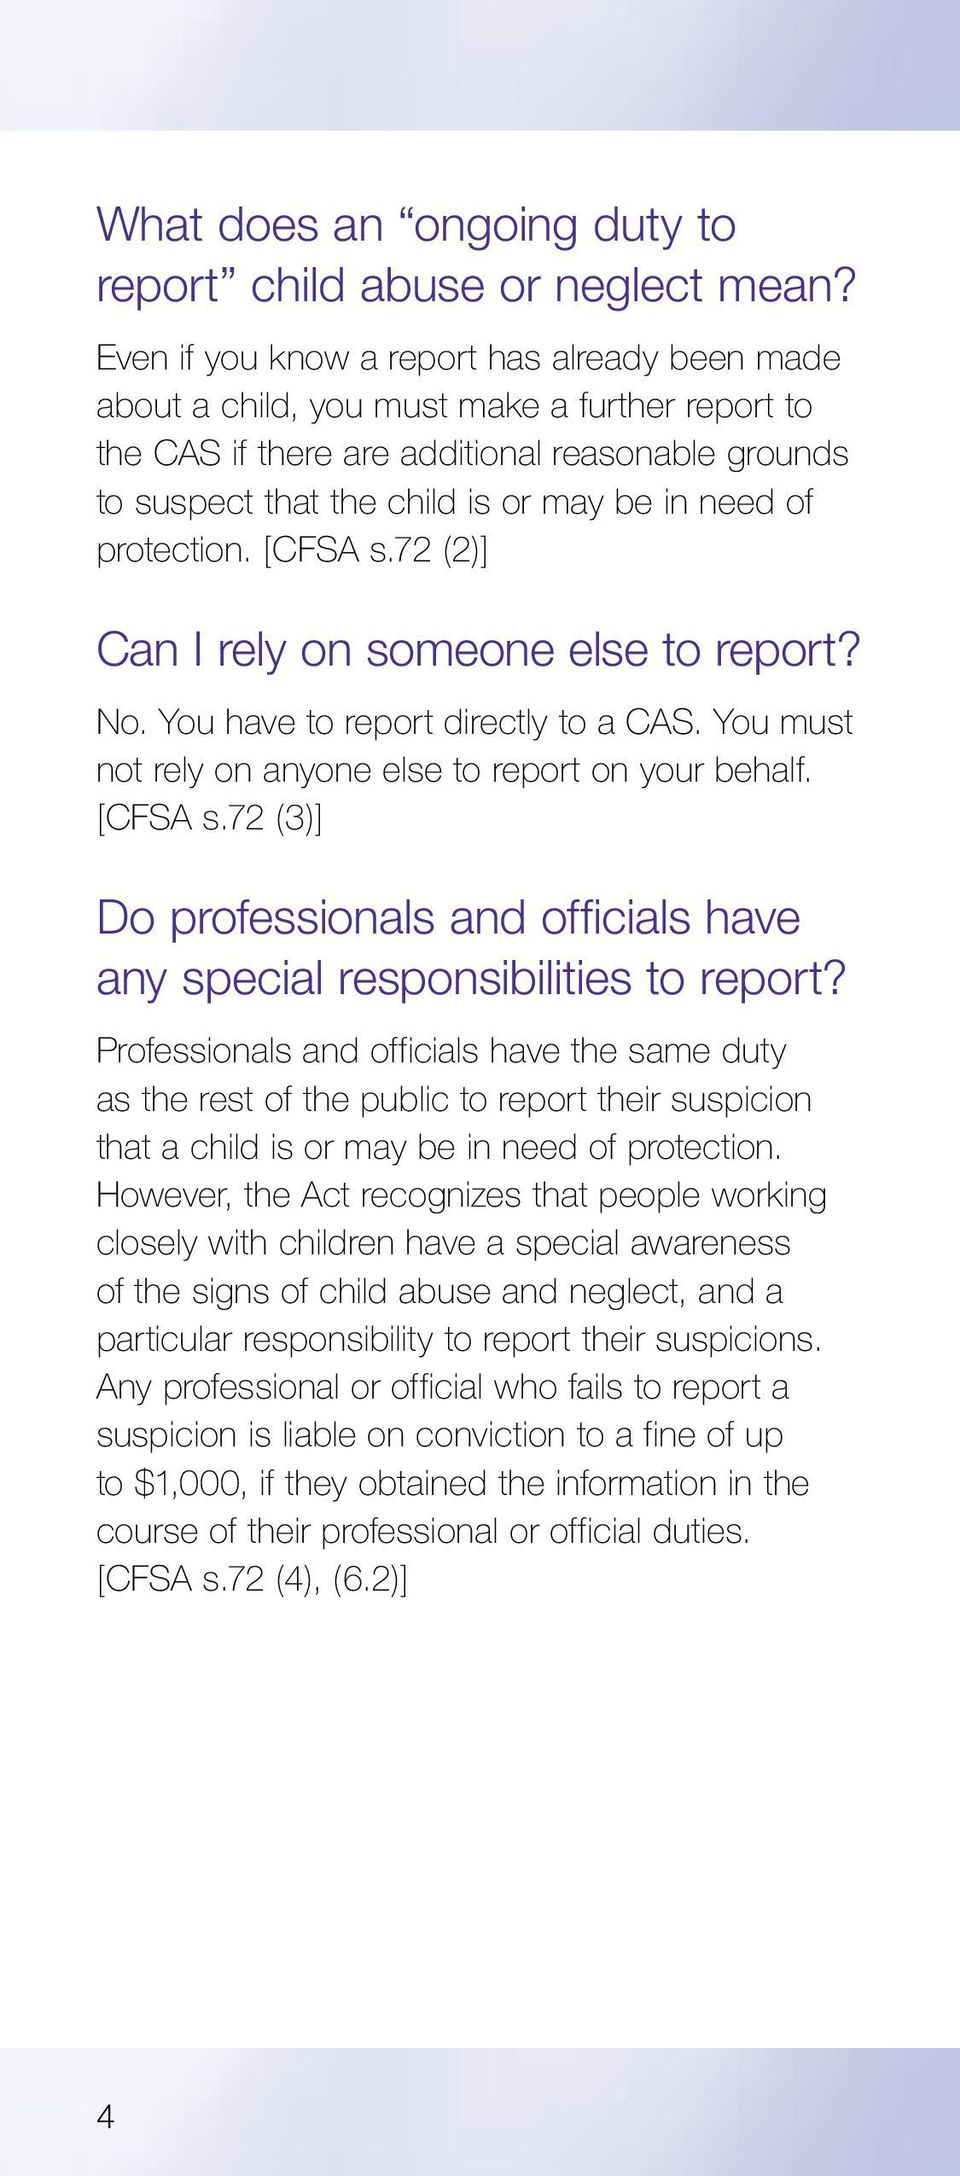 protection. [CFSA s.72 (2)] Can I rely on someone else to report? No. You have to report directly to a CAS. You must not rely on anyone else to report on your behalf. [CFSA s.72 (3)] Do professionals and officials have any special responsibilities to report?